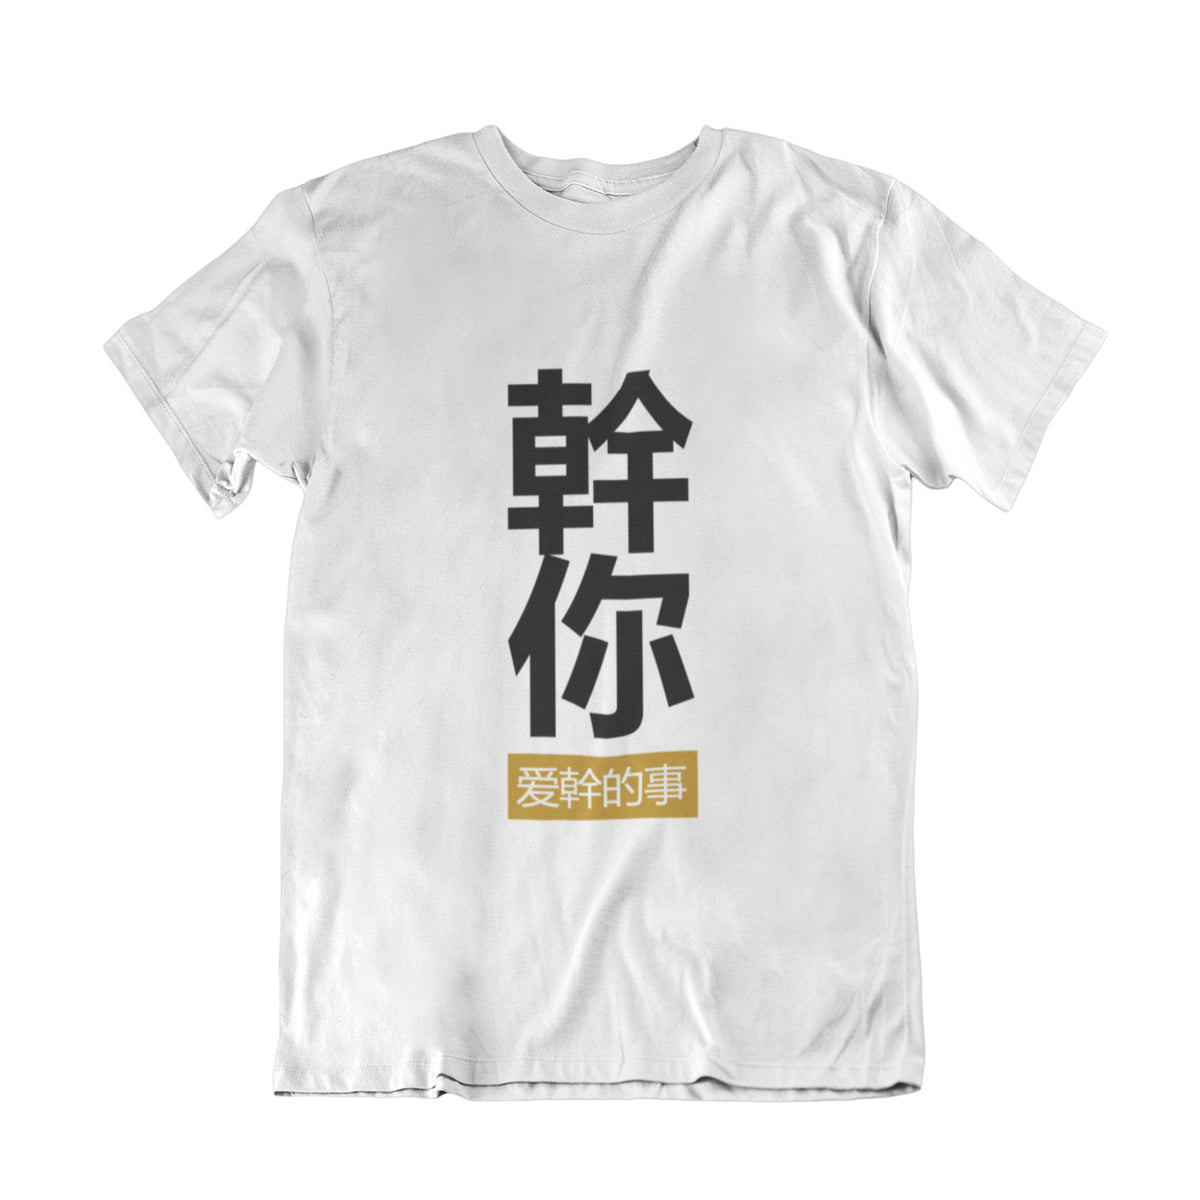 幹你爱幹的事 Doing the Things that You Love Crew Neck S-Sleeve T-shirt